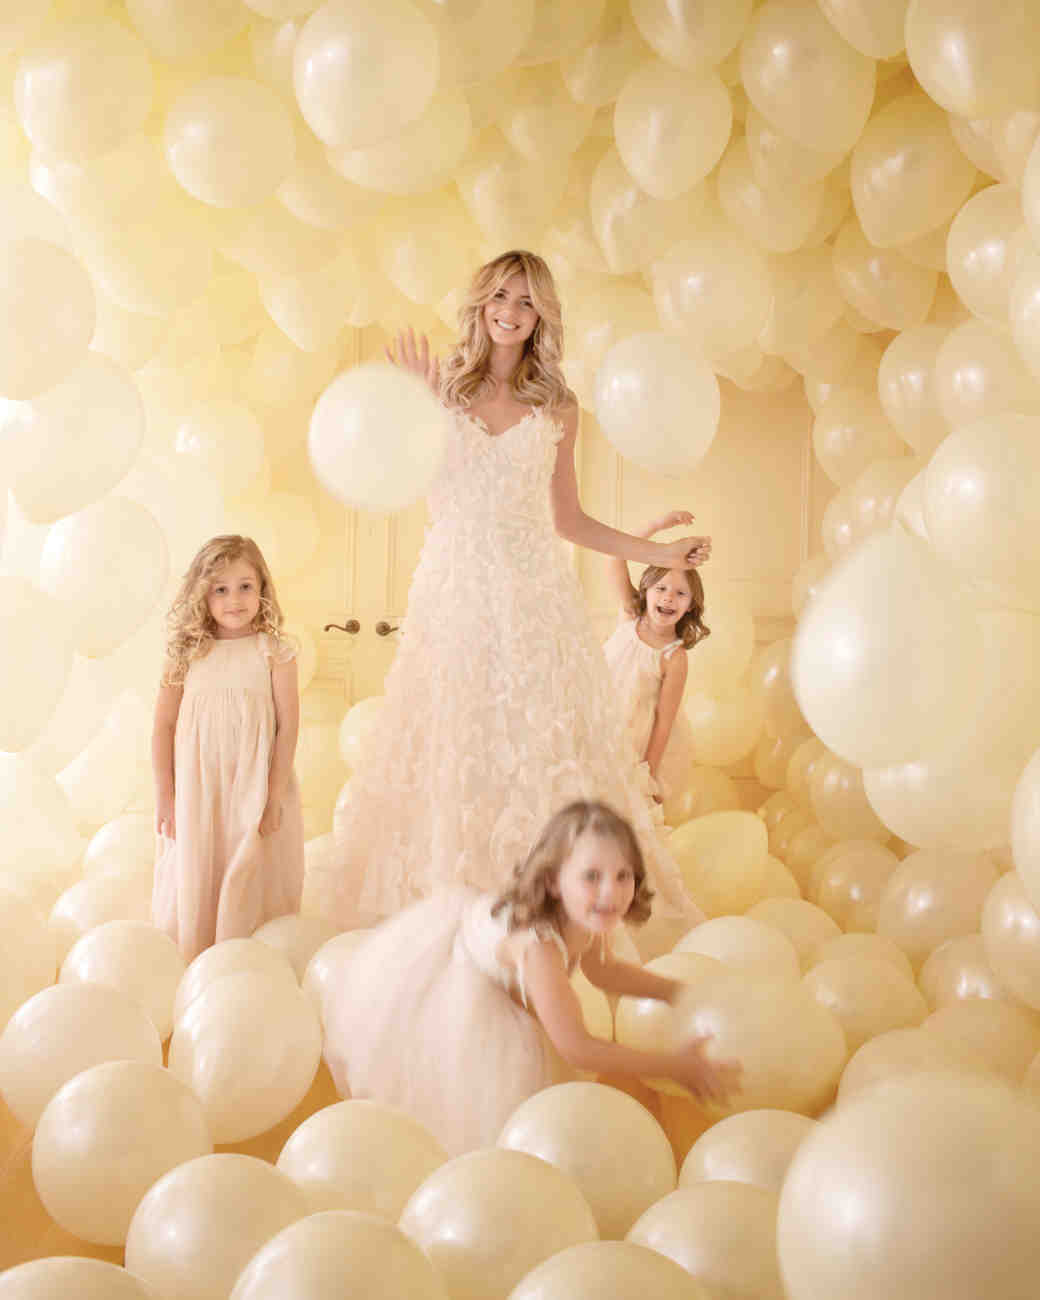 DIY Balloon Wedding Decor | Martha Stewart Weddings